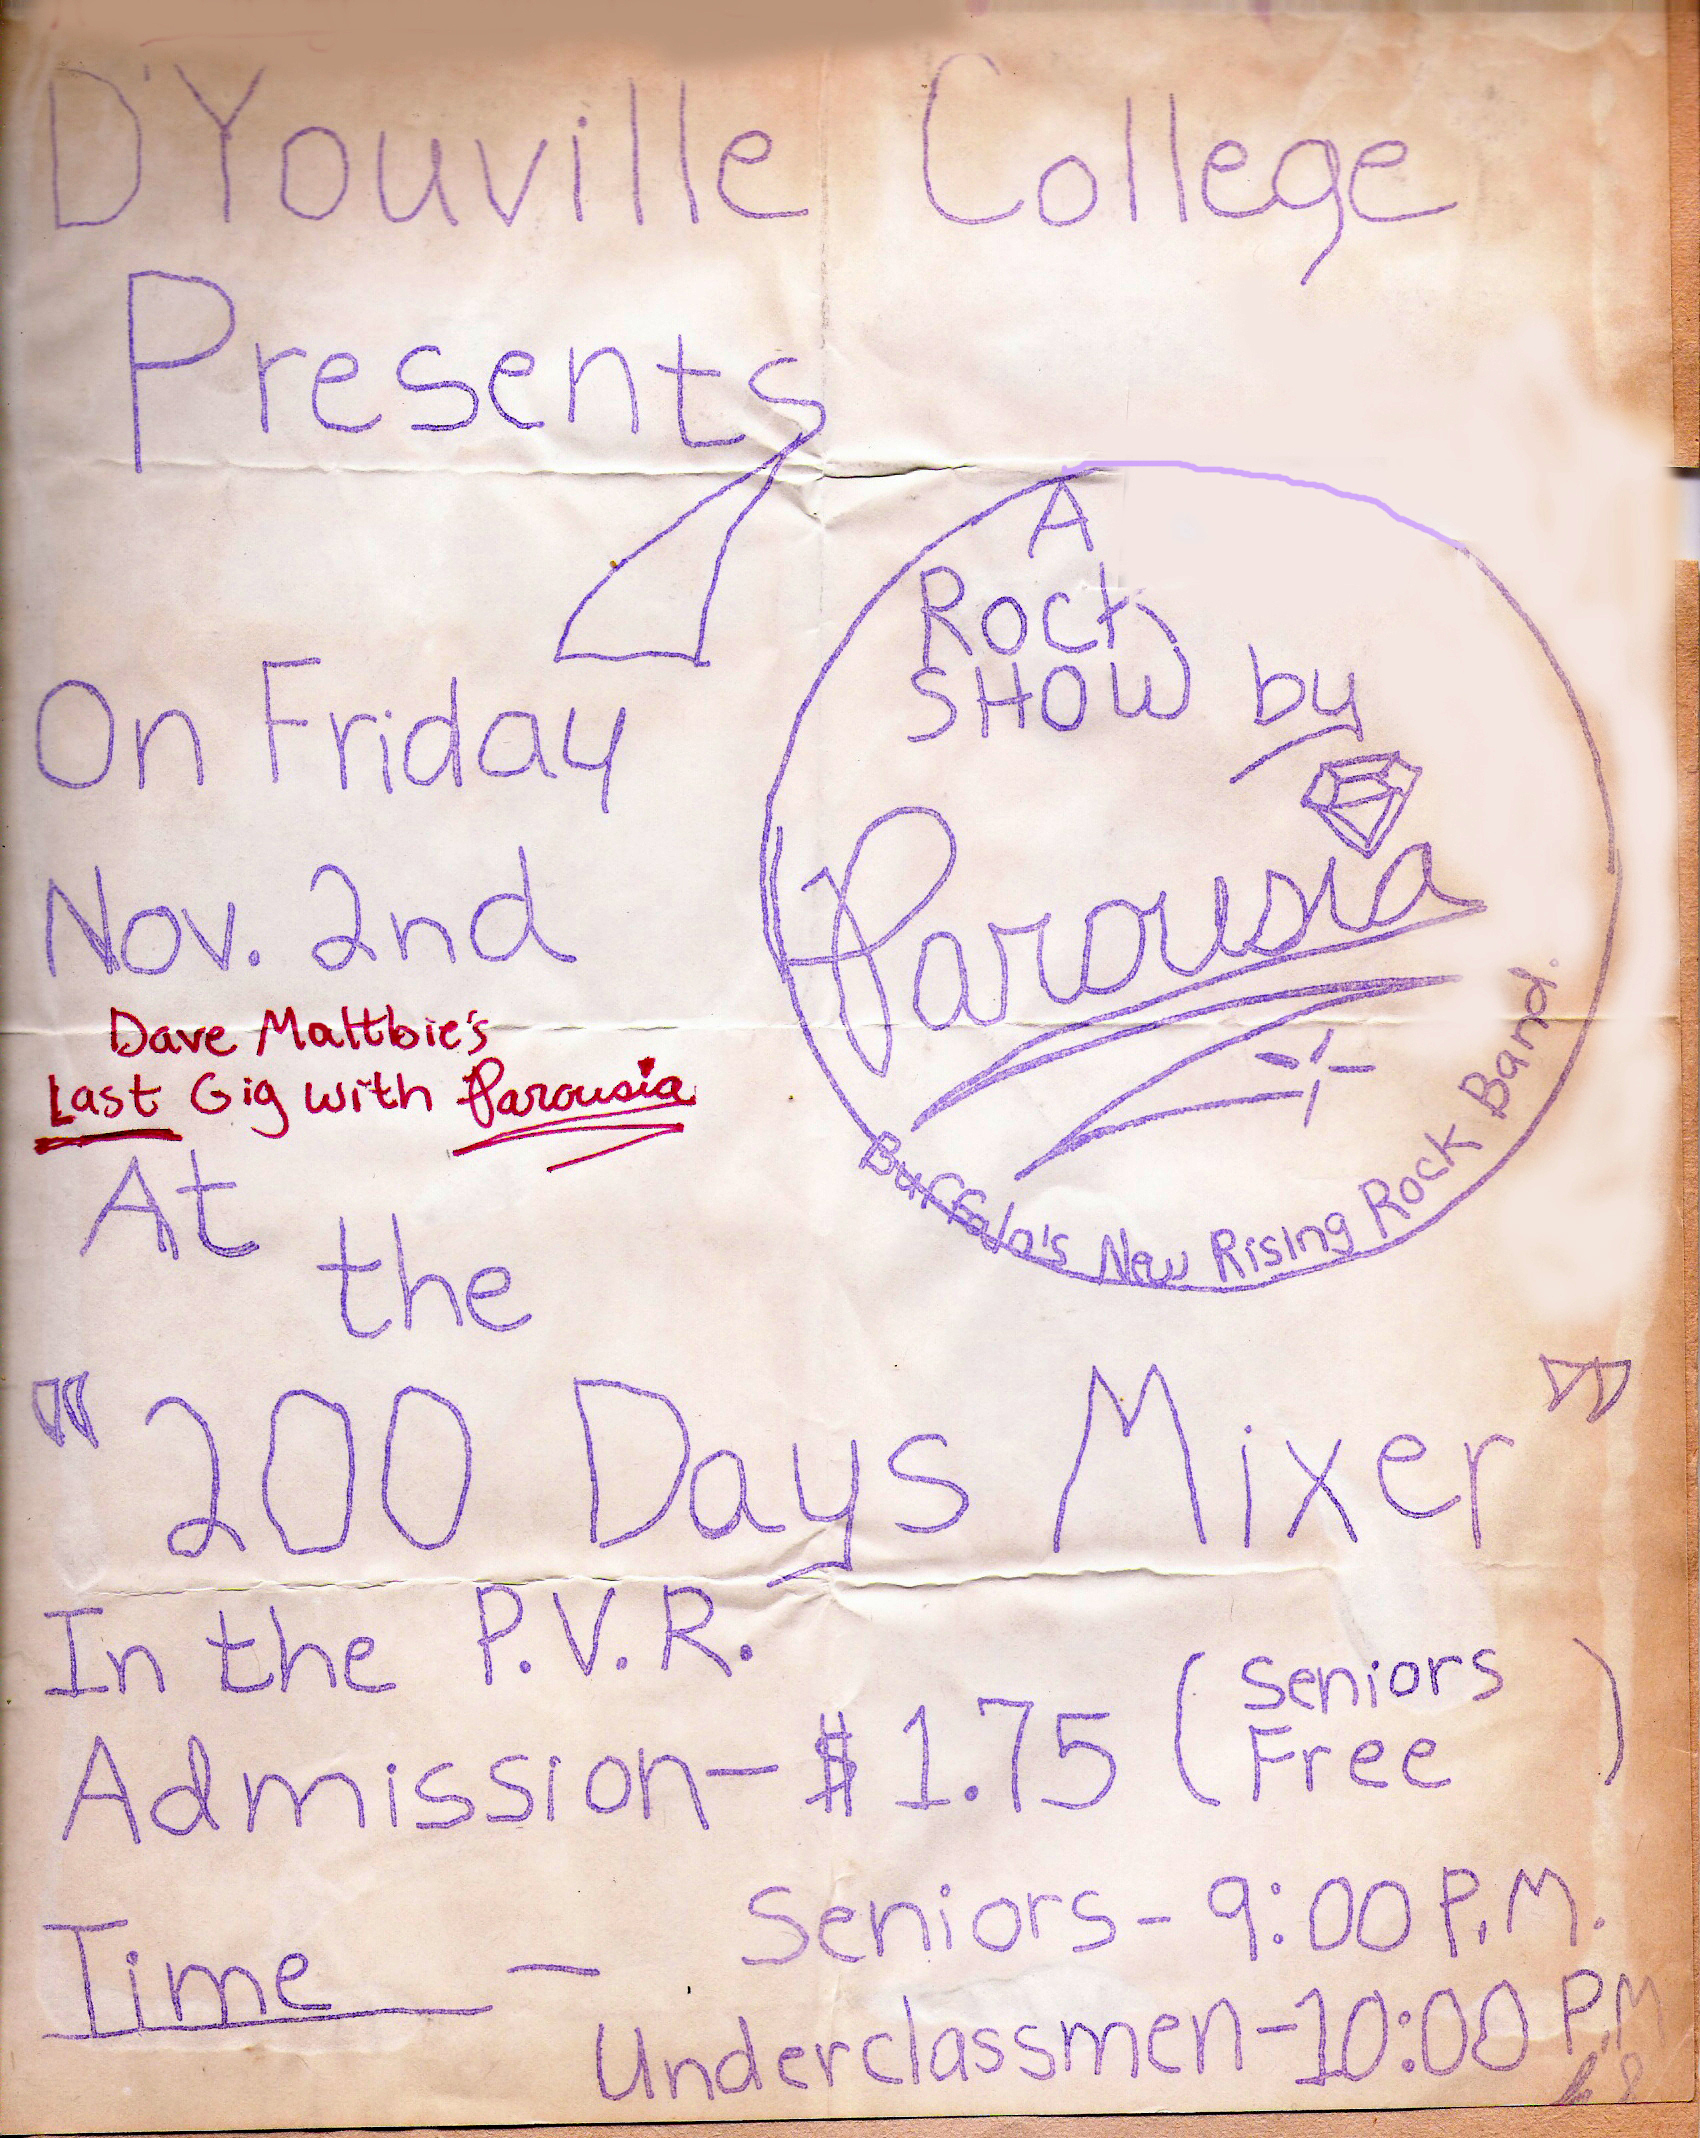 D'Youville College 320 Porter Ave Buffalo, NY - '200 days Mixer' November 22nd, 1979